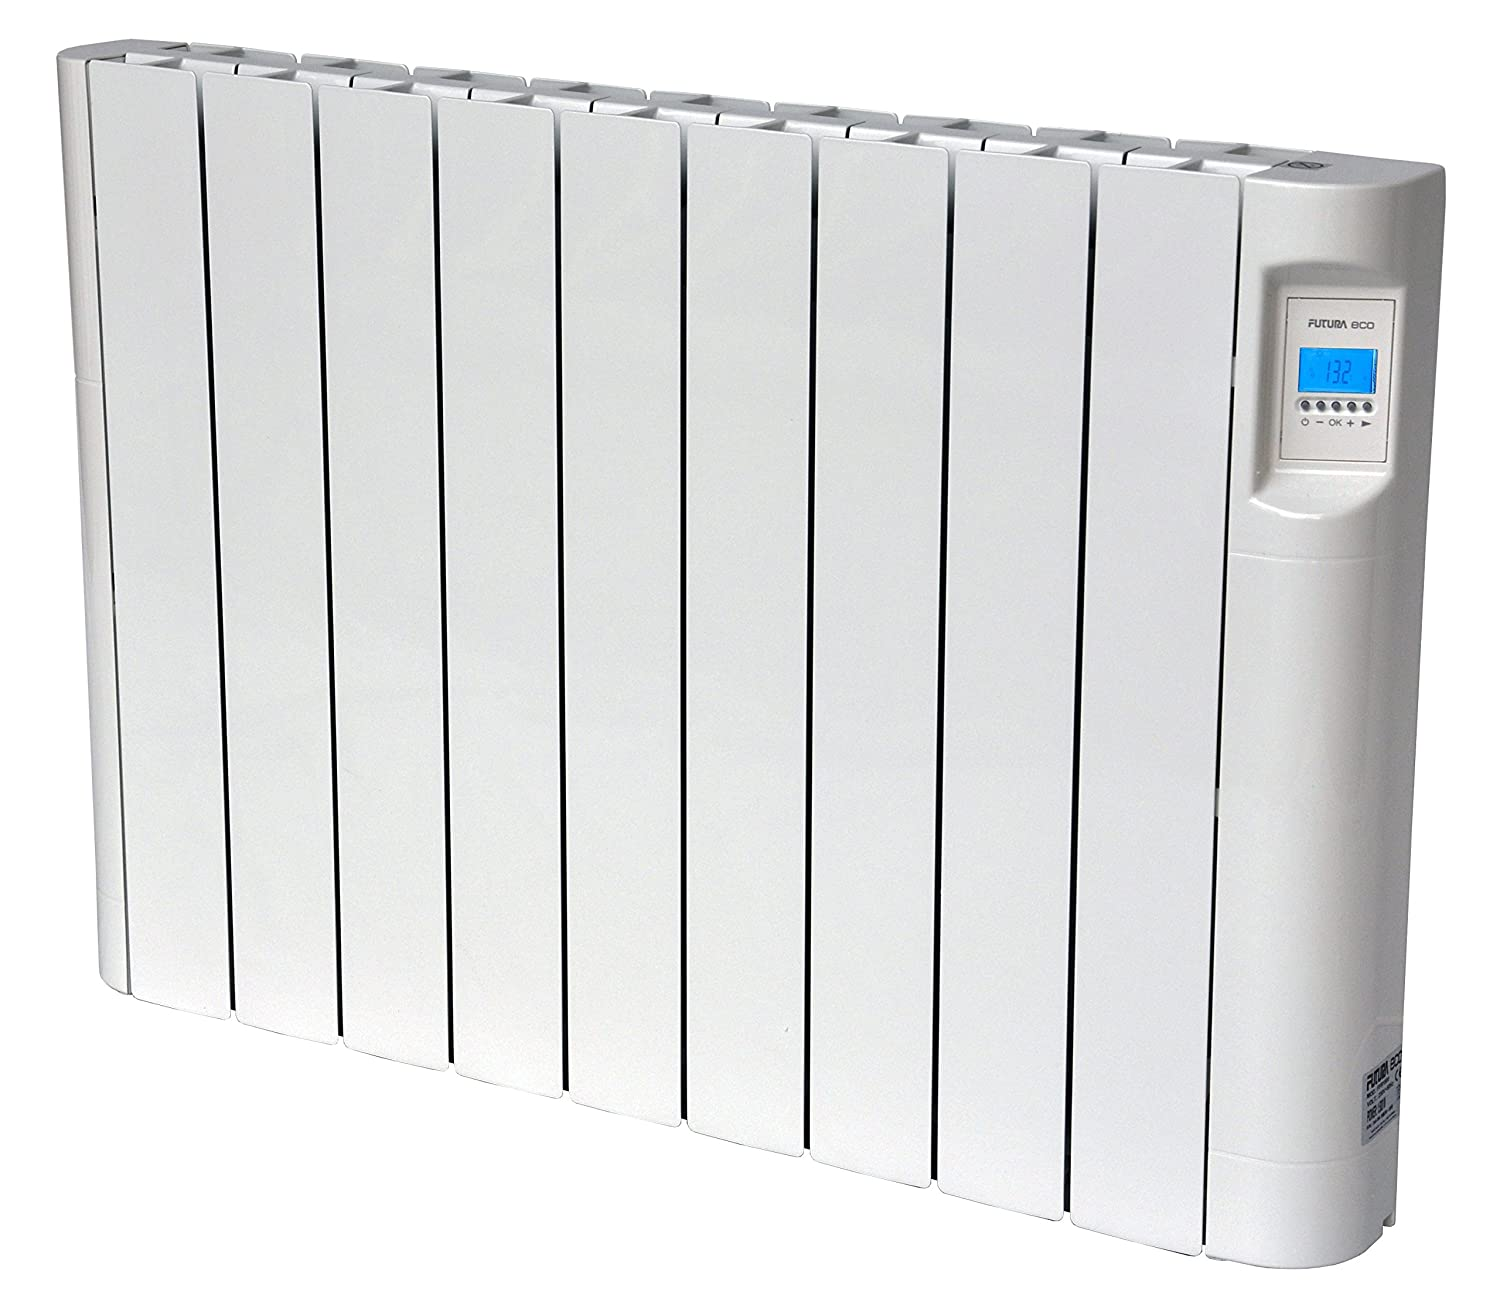 Slimline electric heaters wall mounted - Futura Eco 1500w Electric Wall Mounted Oil Filled Radiator Slimline 24 7 Timer Advanced Chrono Thermostat Lcd Screen Energy Efficent Thermal Heating